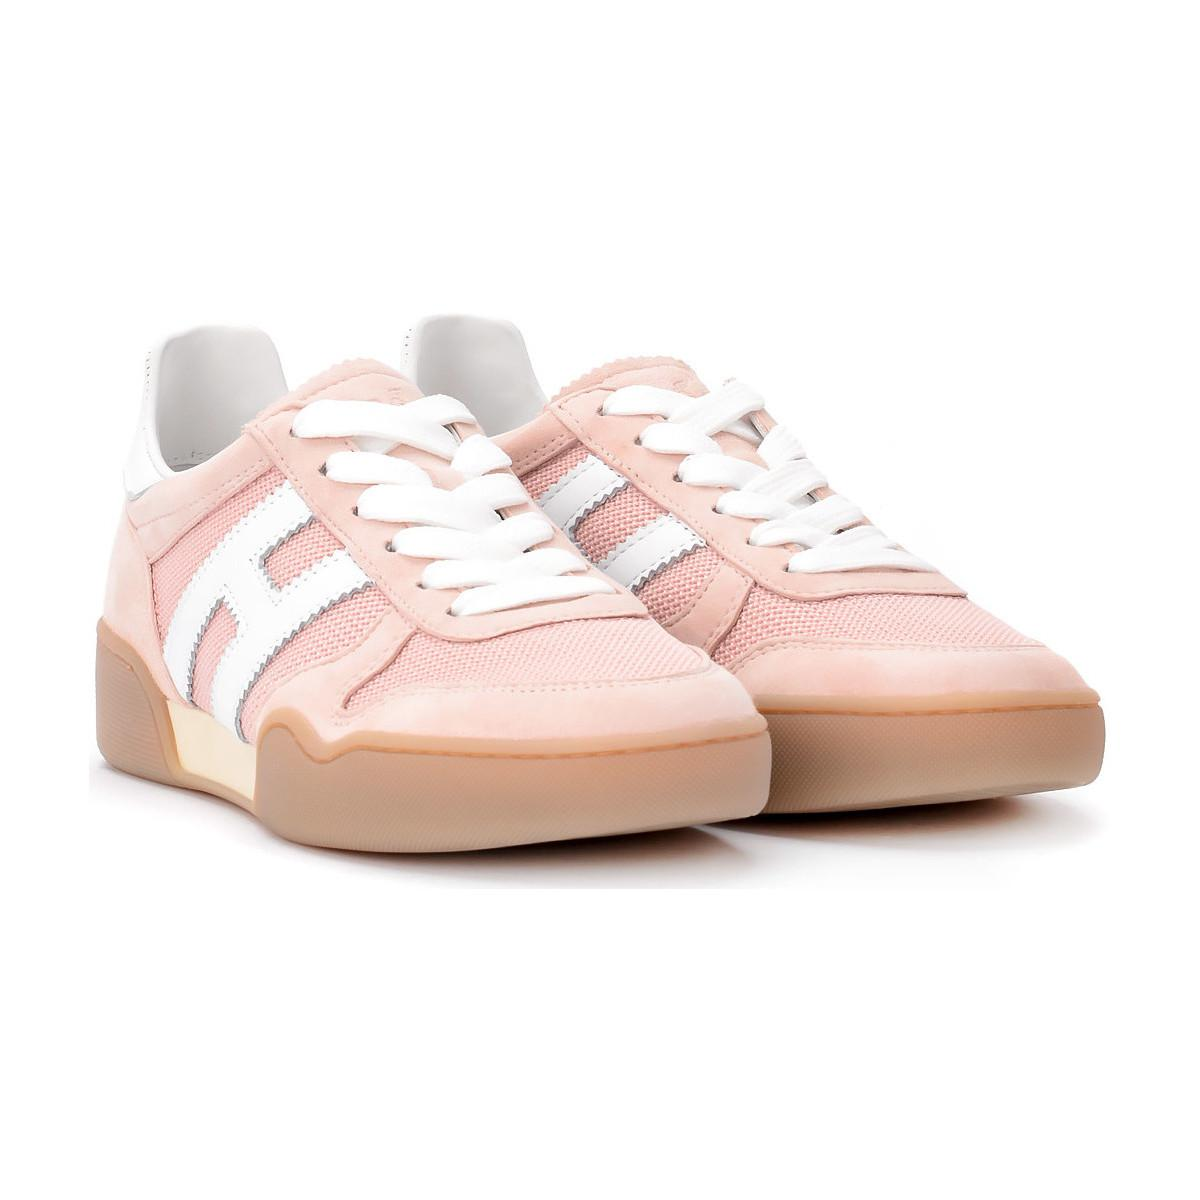 7eea5b963d Hogan Sneaker H357 In Suede E Tessuto Rosa Women's Shoes (trainers ...